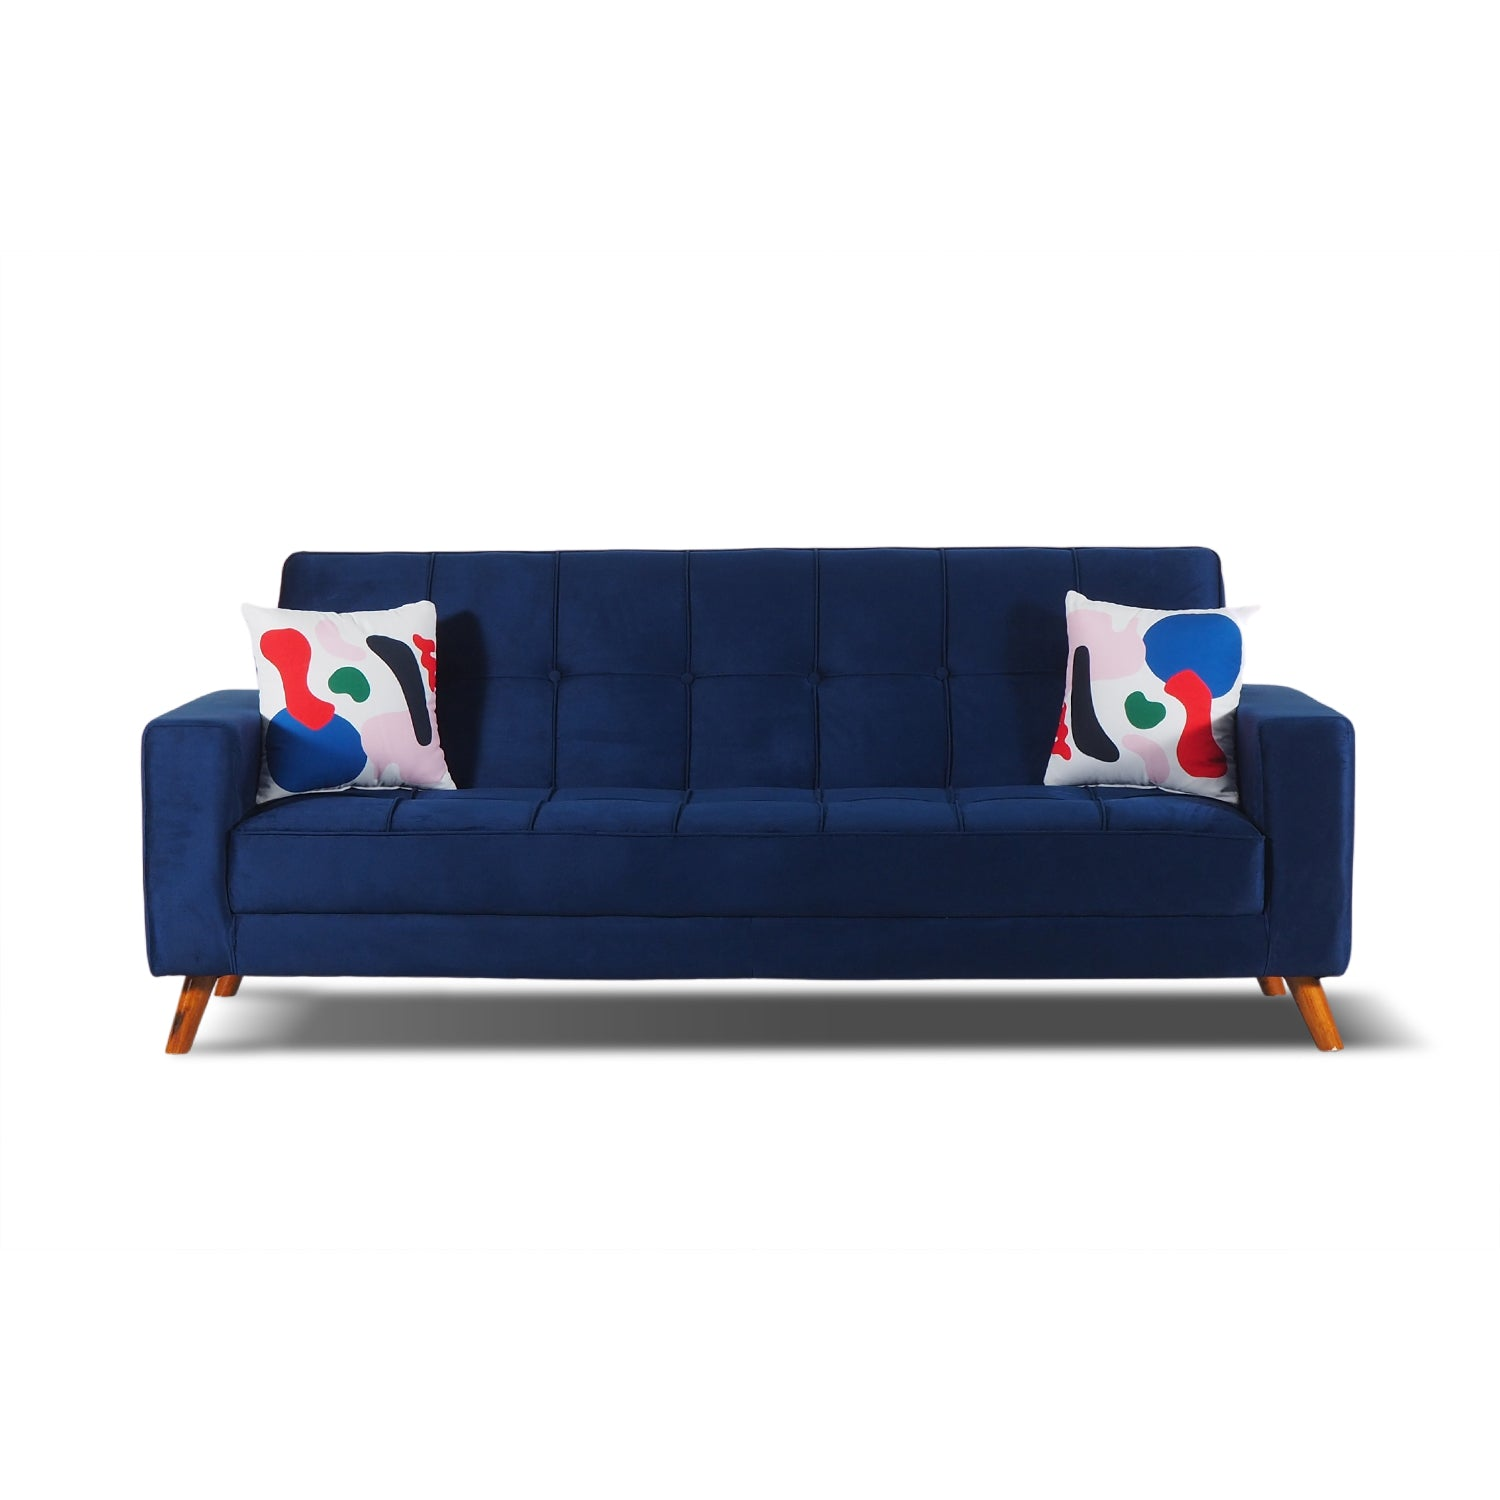 Sofa Bed 101 Blue